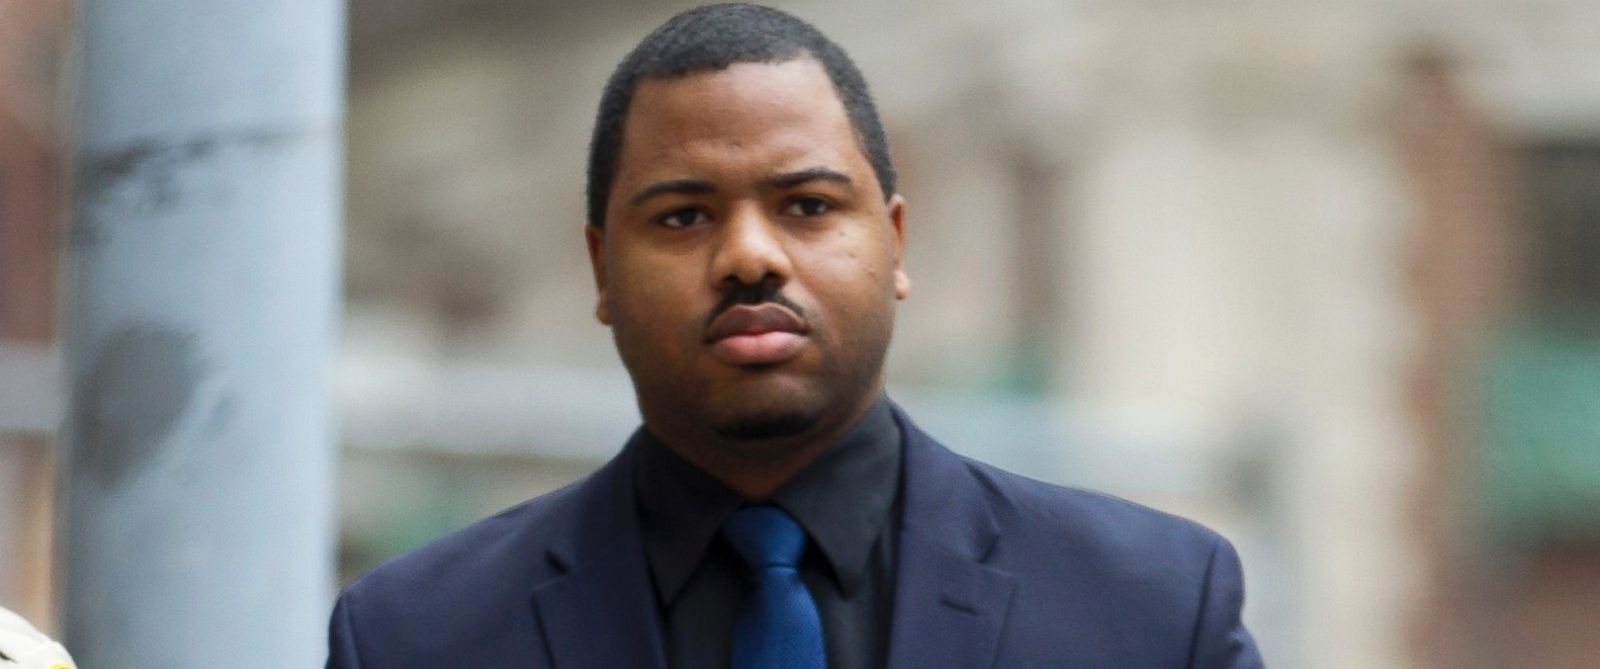 PHOTO: Officer William Porter, one of six Baltimore city police officers charged in connection to the death of Freddie Gray, arrives at the courthouse as jury deliberations continue in his trial, Dec. 16, 2015, in Baltimore.